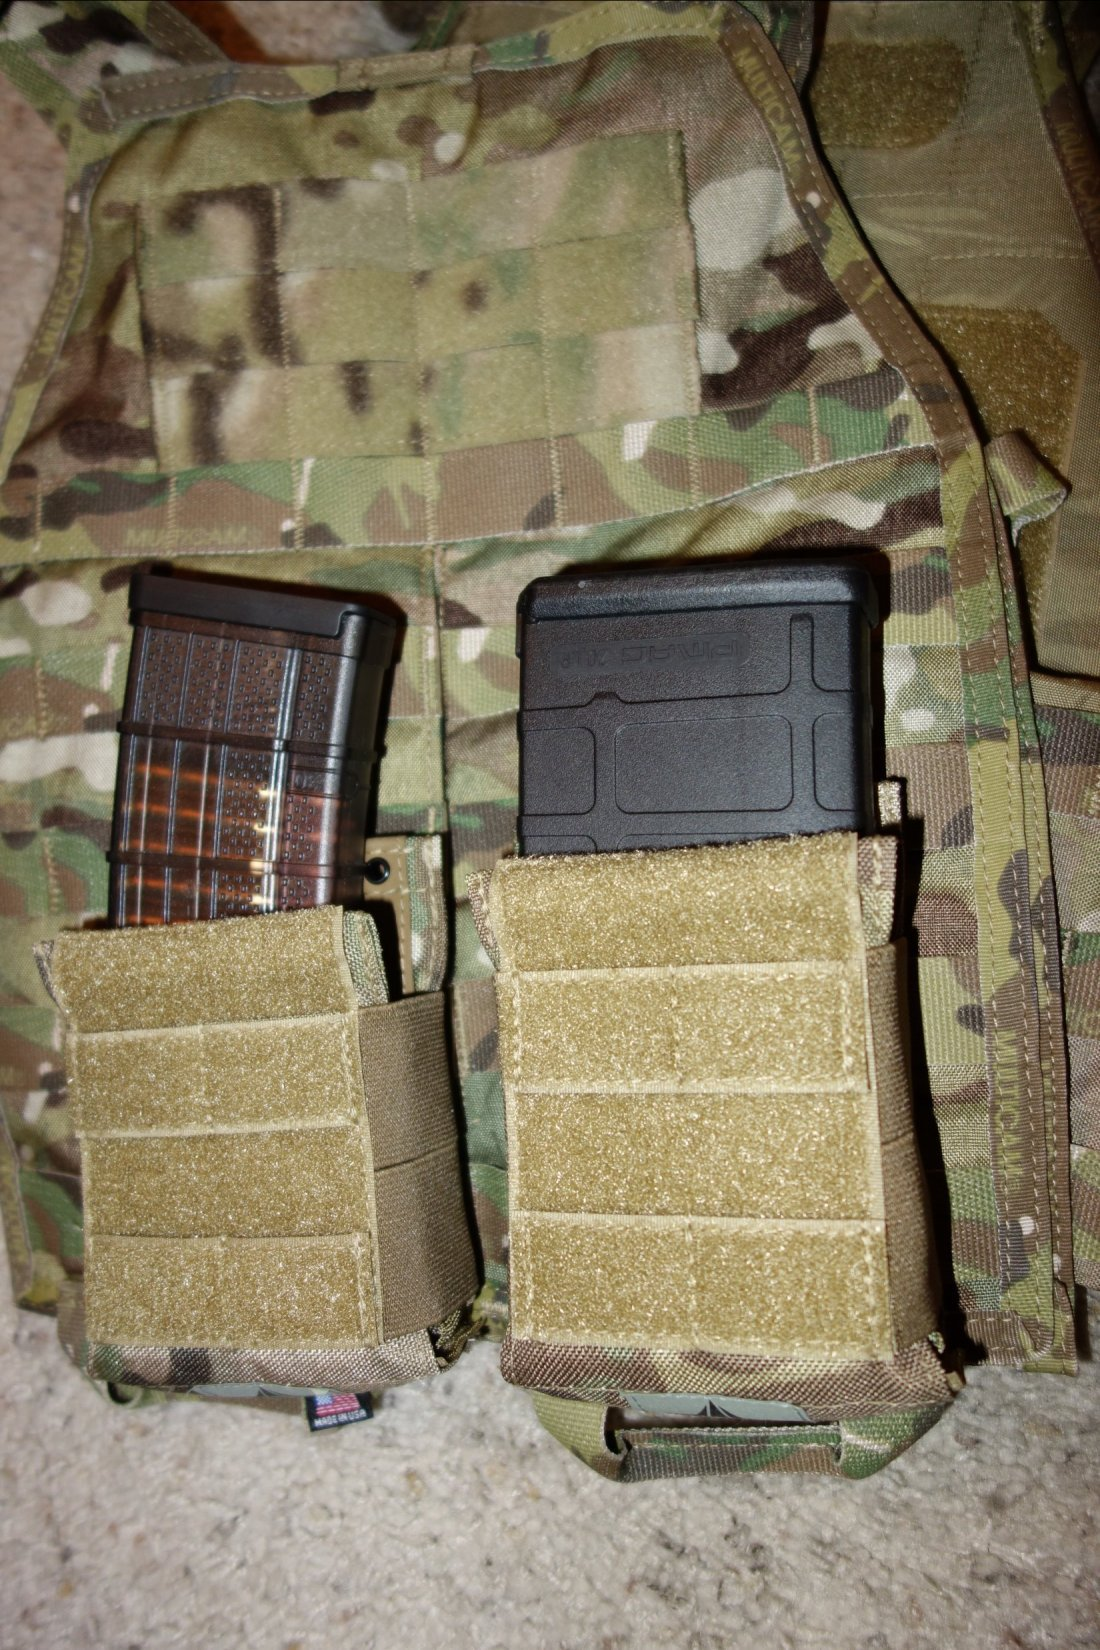 Hard Point Equipment Universal Mag Carrier UMC Universal Magazine Carrier Mag Pouch for Tactical Body Armor Carriers and Battle Belts David Crane DefenseReview.com DR 10 Tired of Tacos? Load Your Tactical Vest (Armor Plate Carrier) with the Hard Point Universal Mag Carrier (UMC): One Modular Magazine Pouch Handles 5.56mm and 7.62mm Rifle Magazines and Pistol Mags